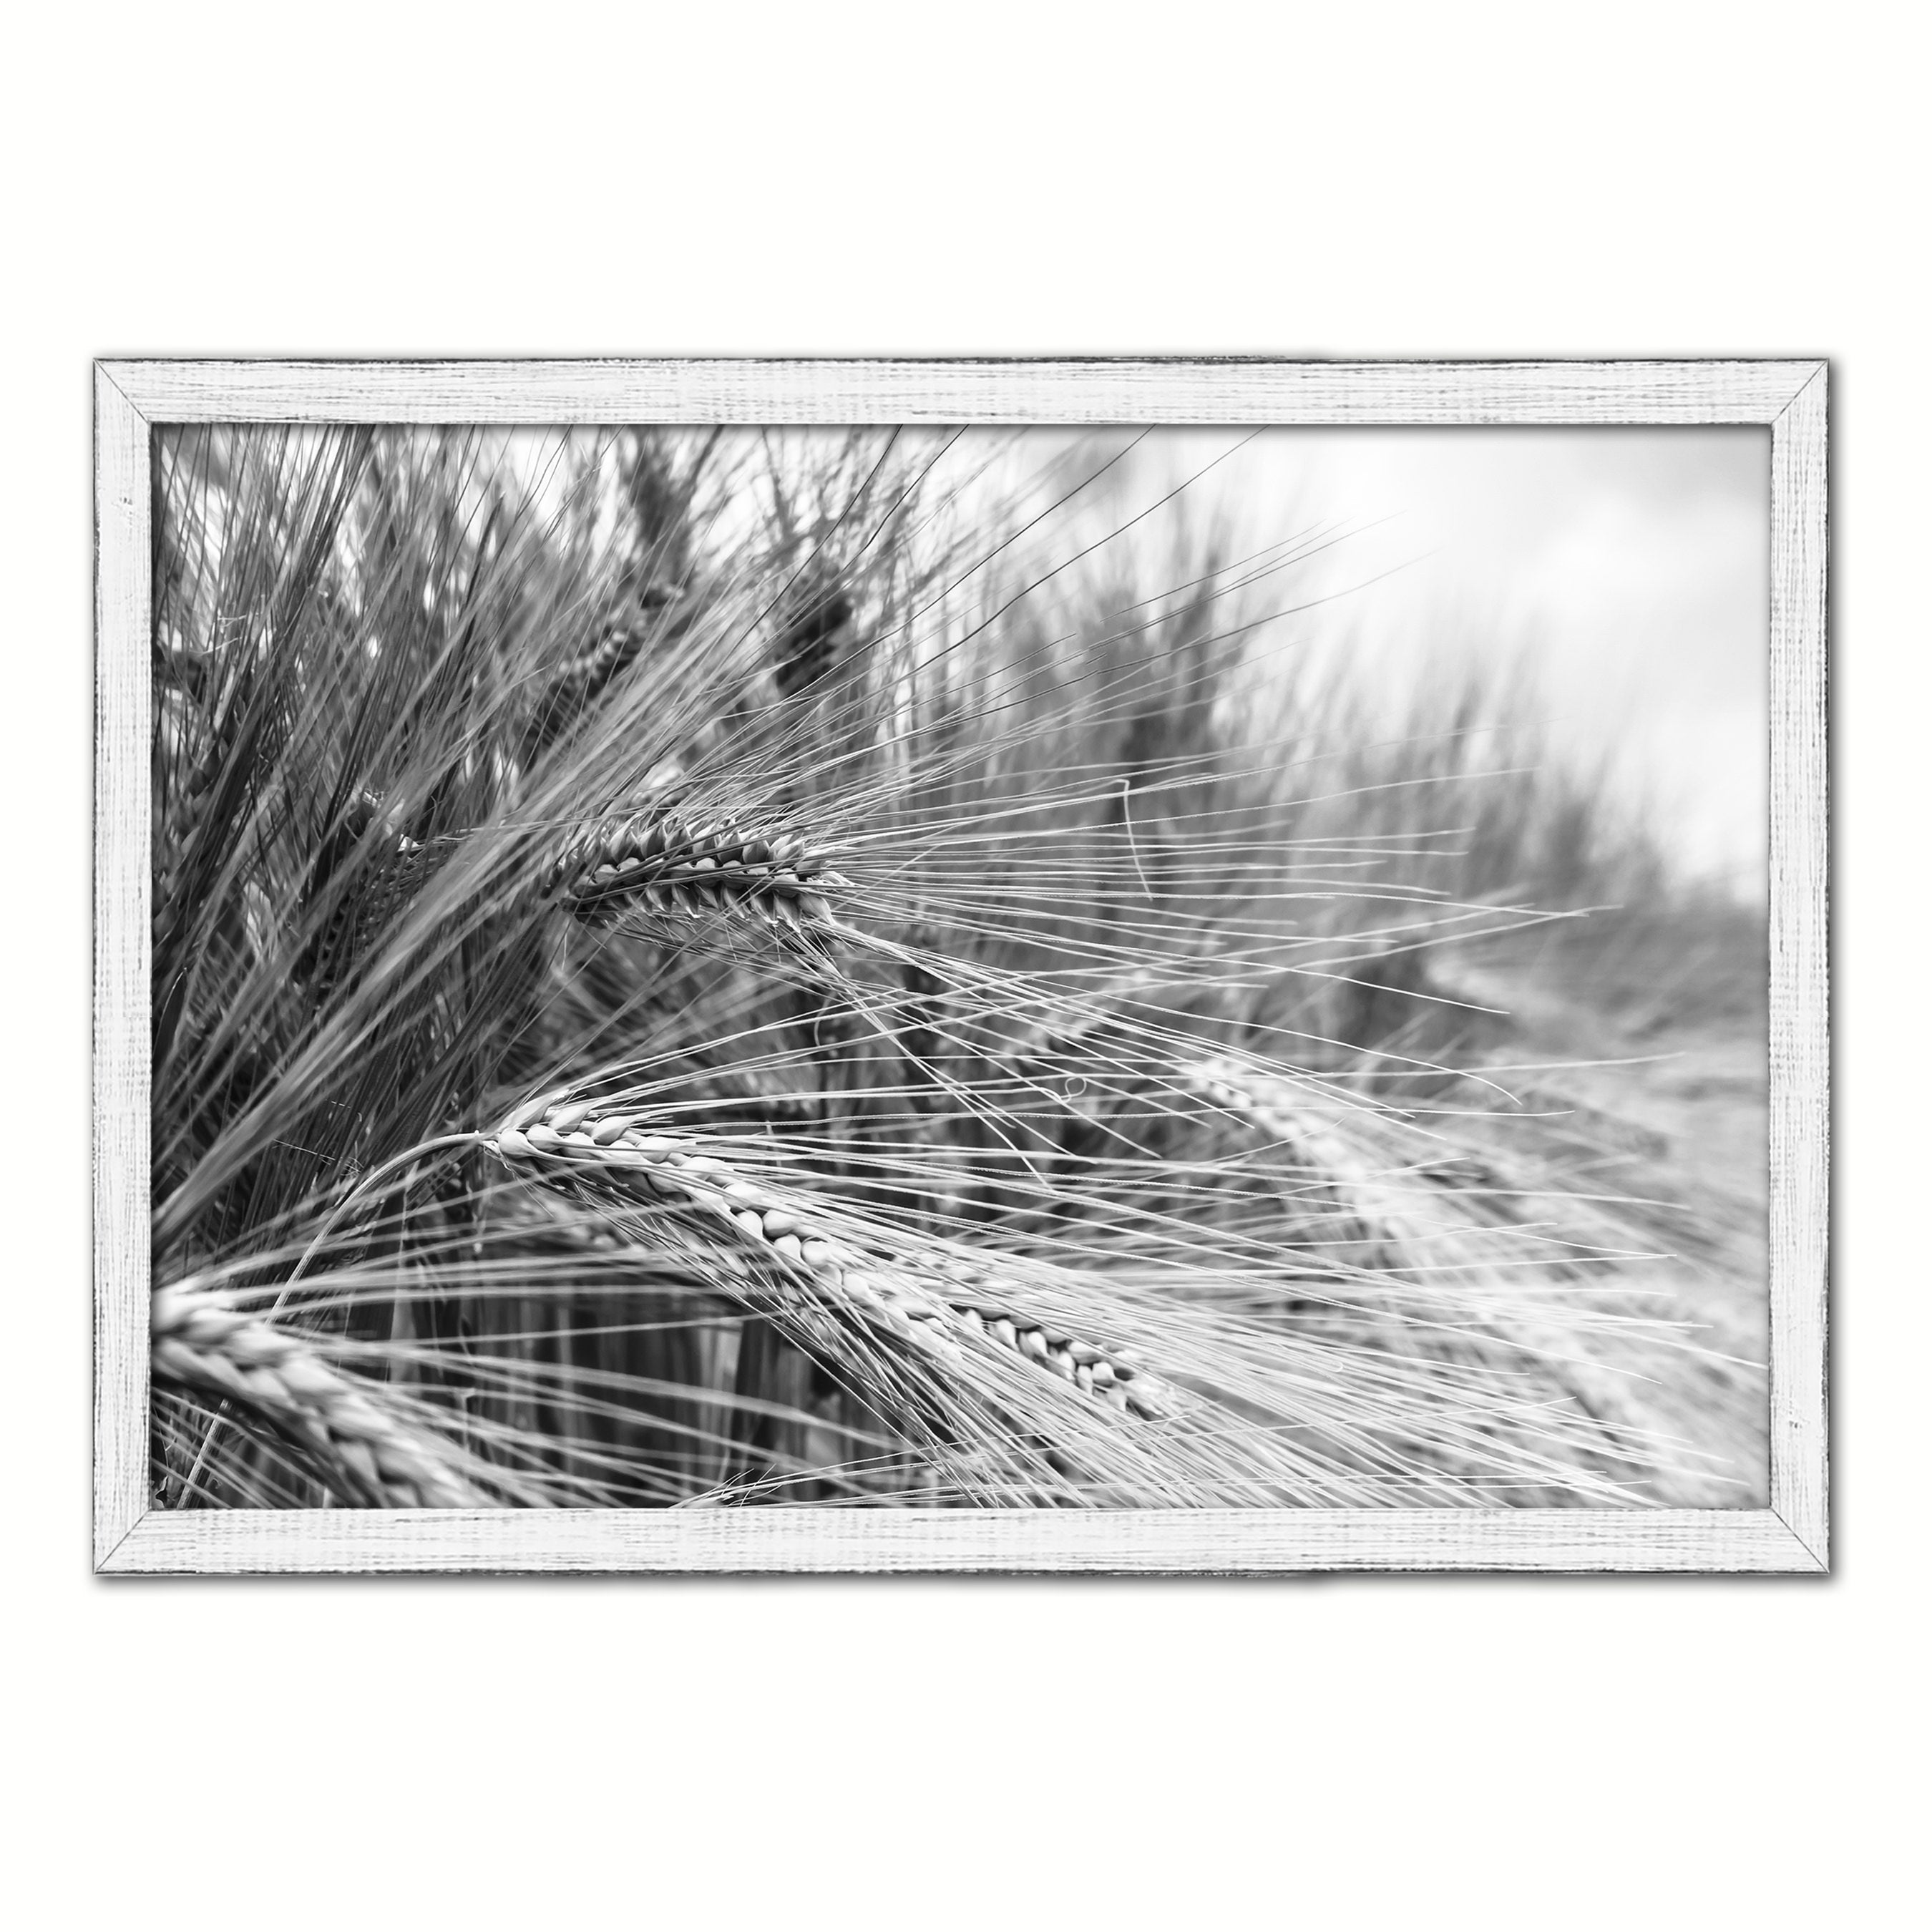 Nutritious Nature Barley Paddy Field Black and White Landscape decor, National Park, Sightseeing, Attractions, White Wash Wood Frame